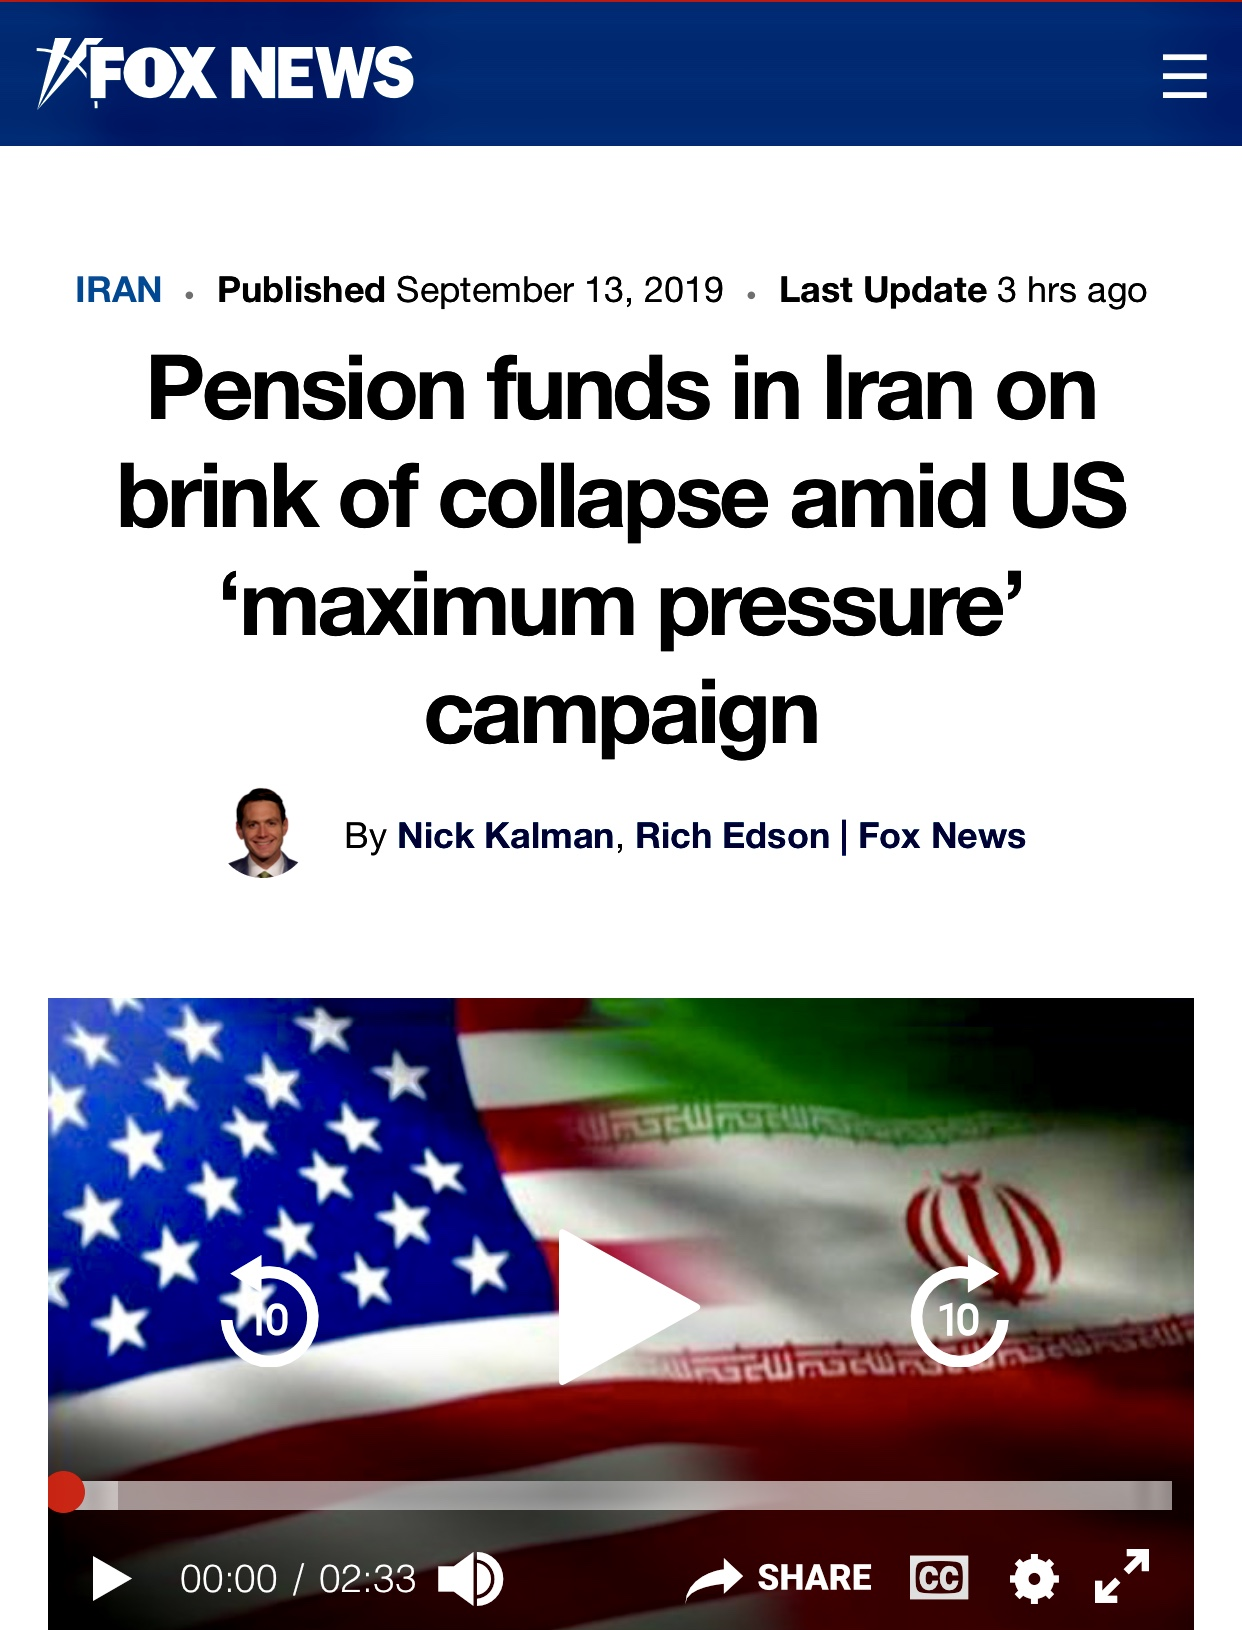 Pension funds in Iran on brink of collapse amid US 'maximum pressure' campaign | Fox News